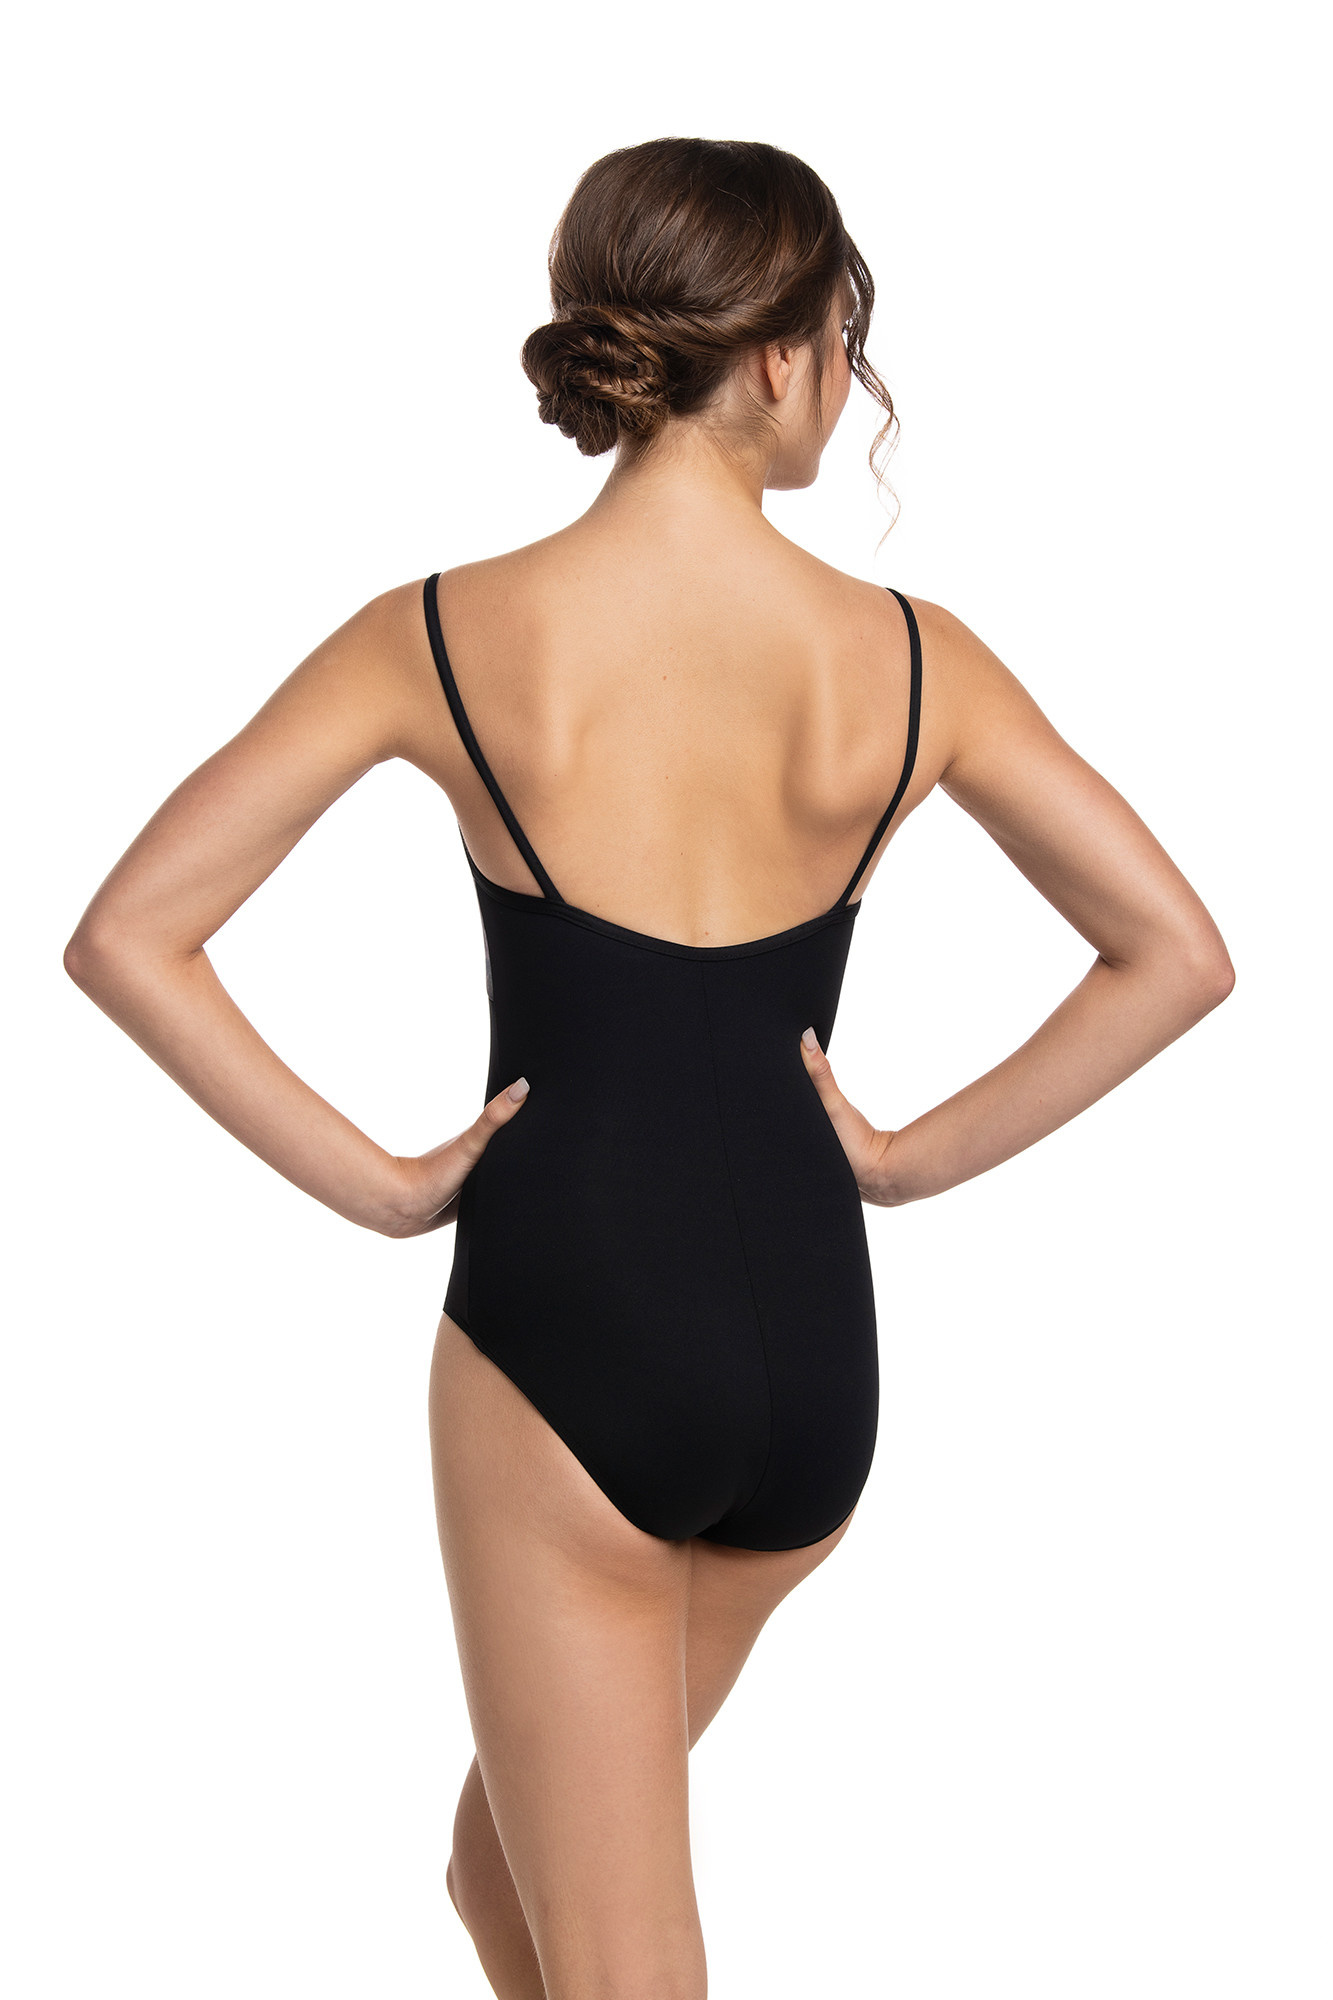 Ainsliewear 153NU Camisole Bodysuit for Adults